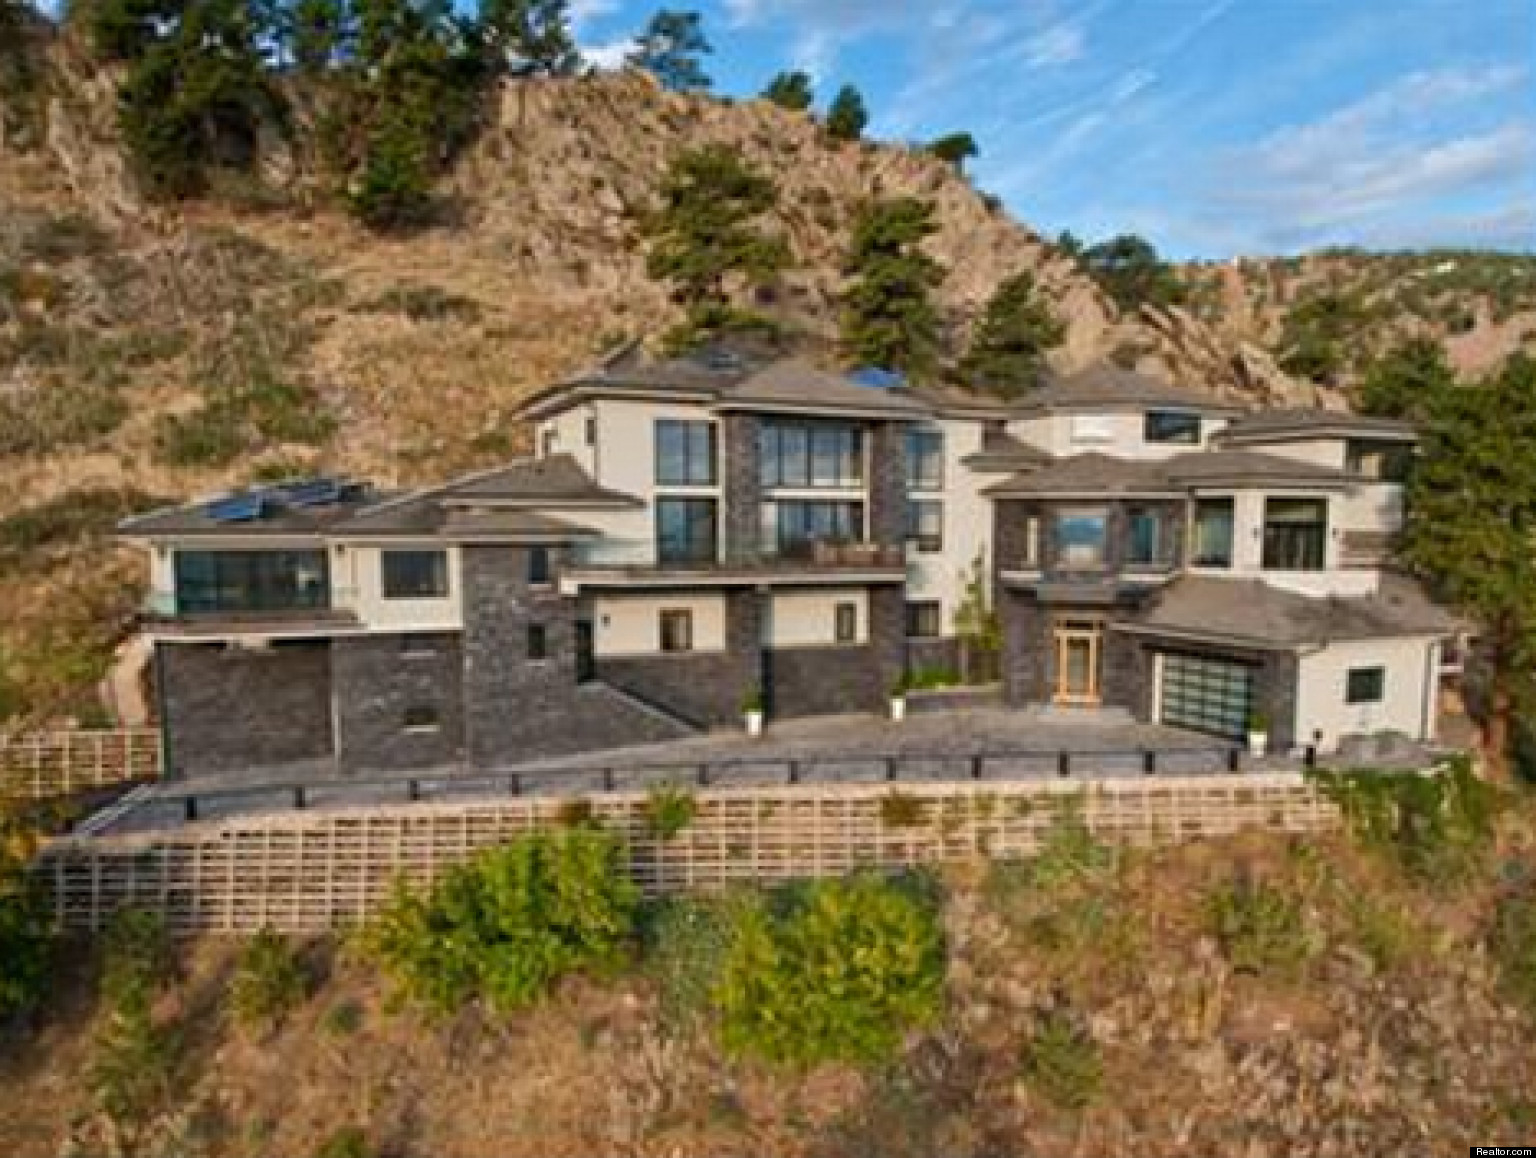 Top 10 most expensive homes in boulder colo in 2012 for Most expensive homes in colorado